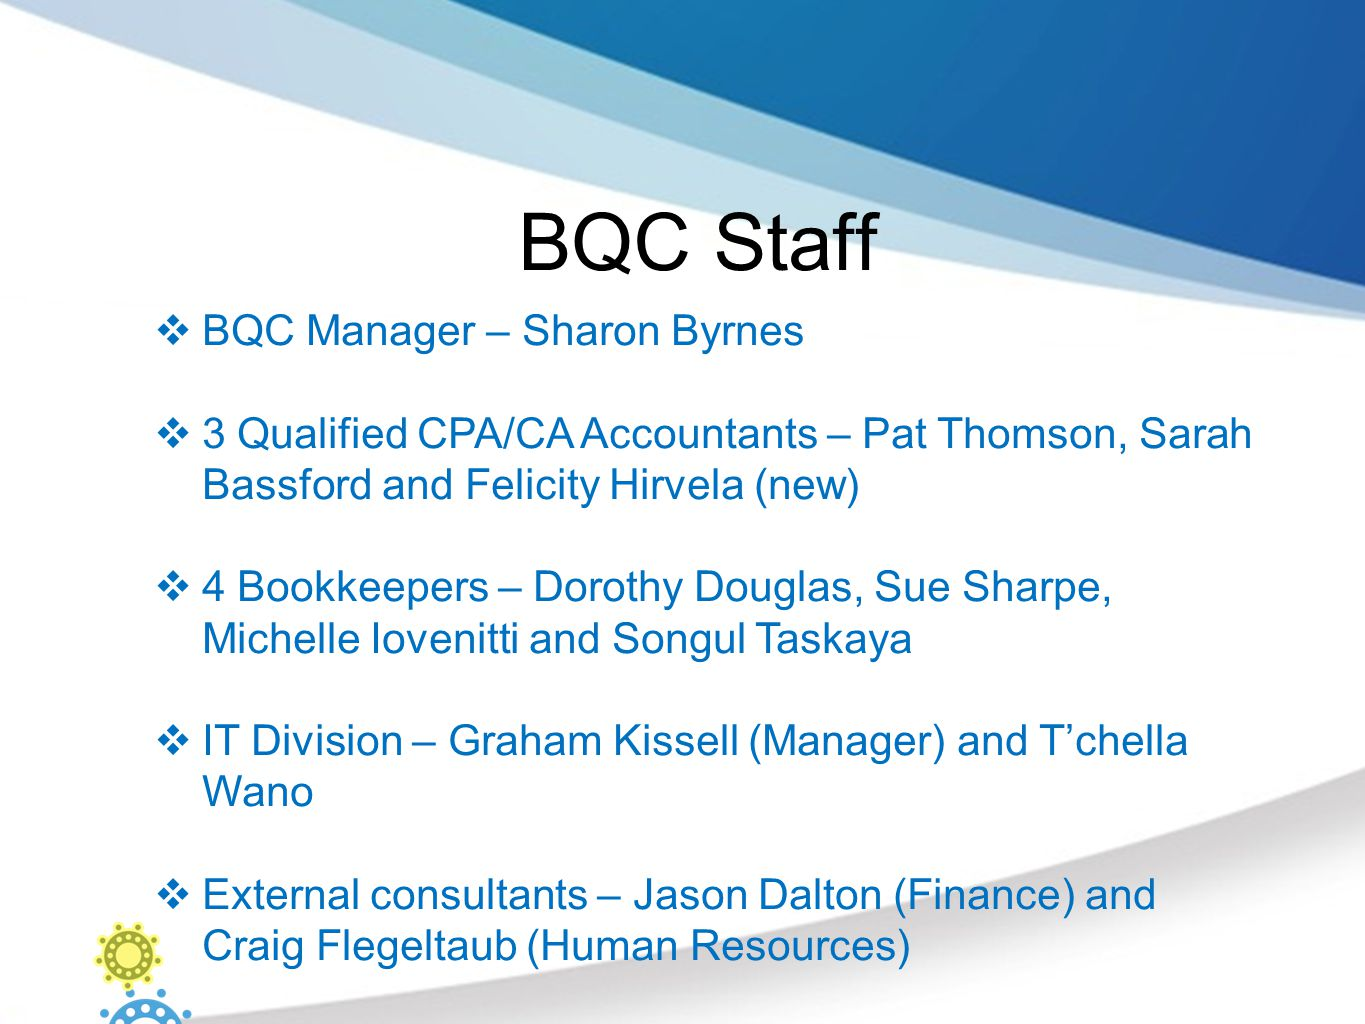 BQC Staff  BQC Manager – Sharon Byrnes  3 Qualified CPA/CA Accountants – Pat Thomson, Sarah Bassford and Felicity Hirvela (new)  4 Bookkeepers – Dorothy Douglas, Sue Sharpe, Michelle Iovenitti and Songul Taskaya  IT Division – Graham Kissell (Manager) and T'chella Wano  External consultants – Jason Dalton (Finance) and Craig Flegeltaub (Human Resources)